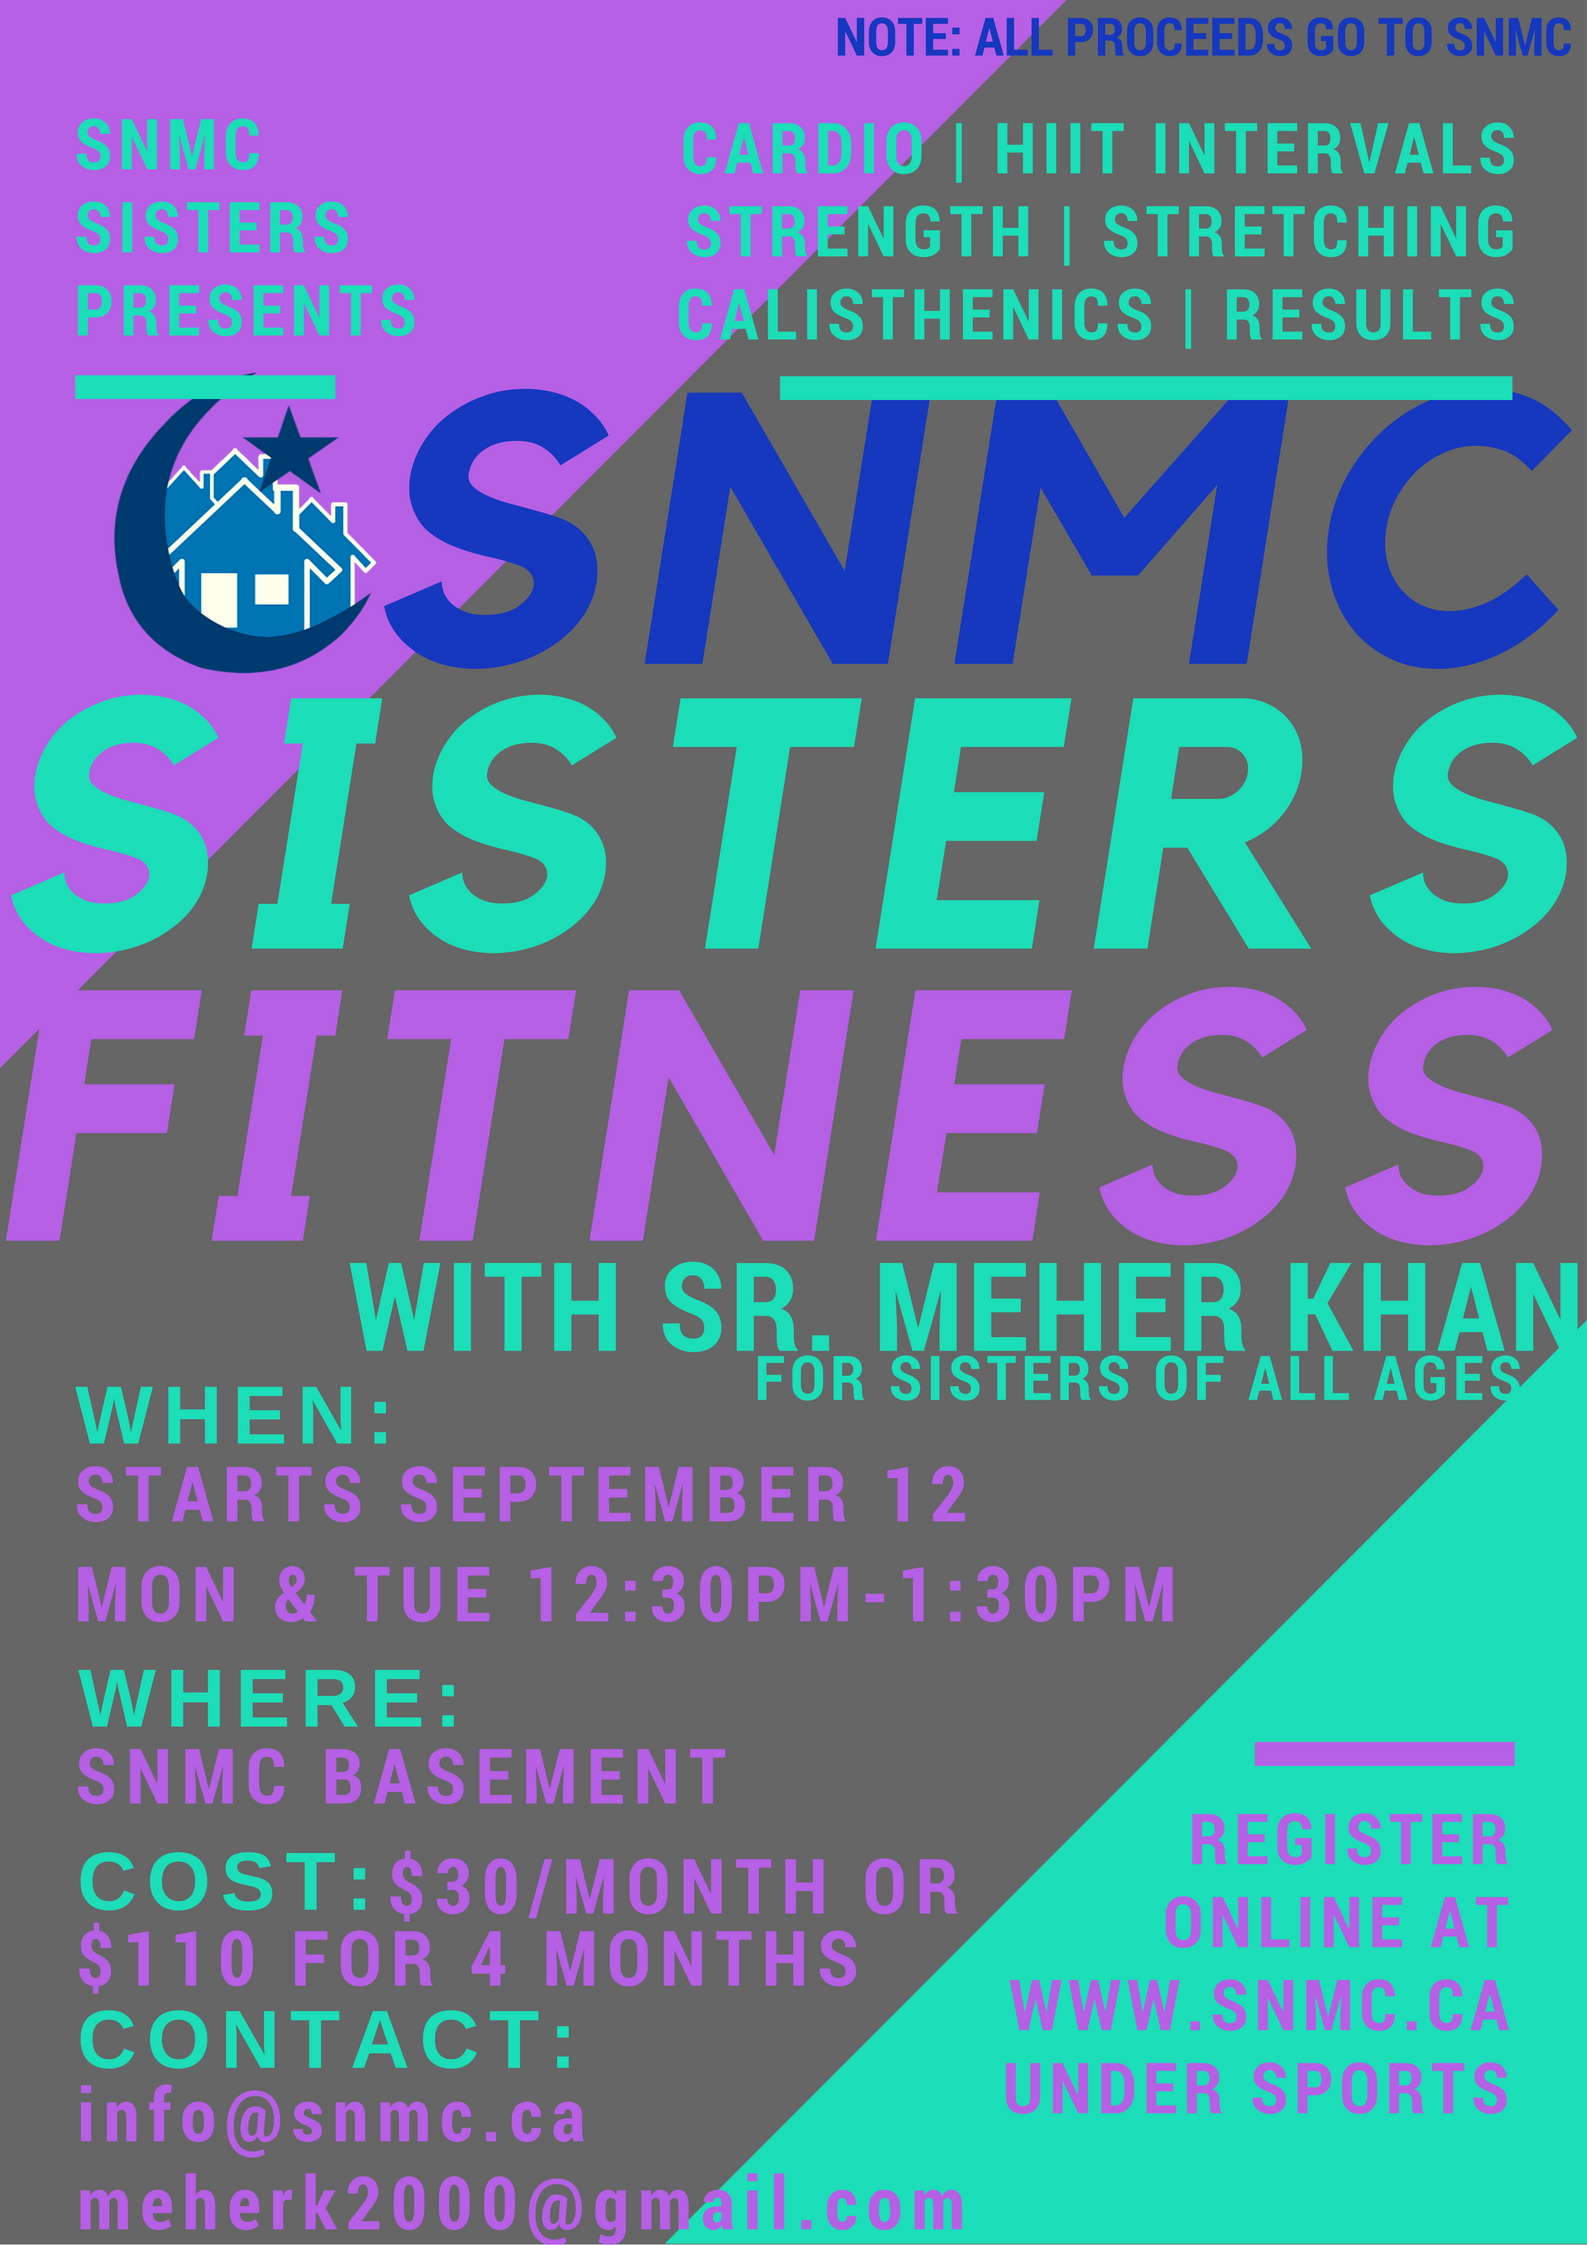 SNMC sisters fitness